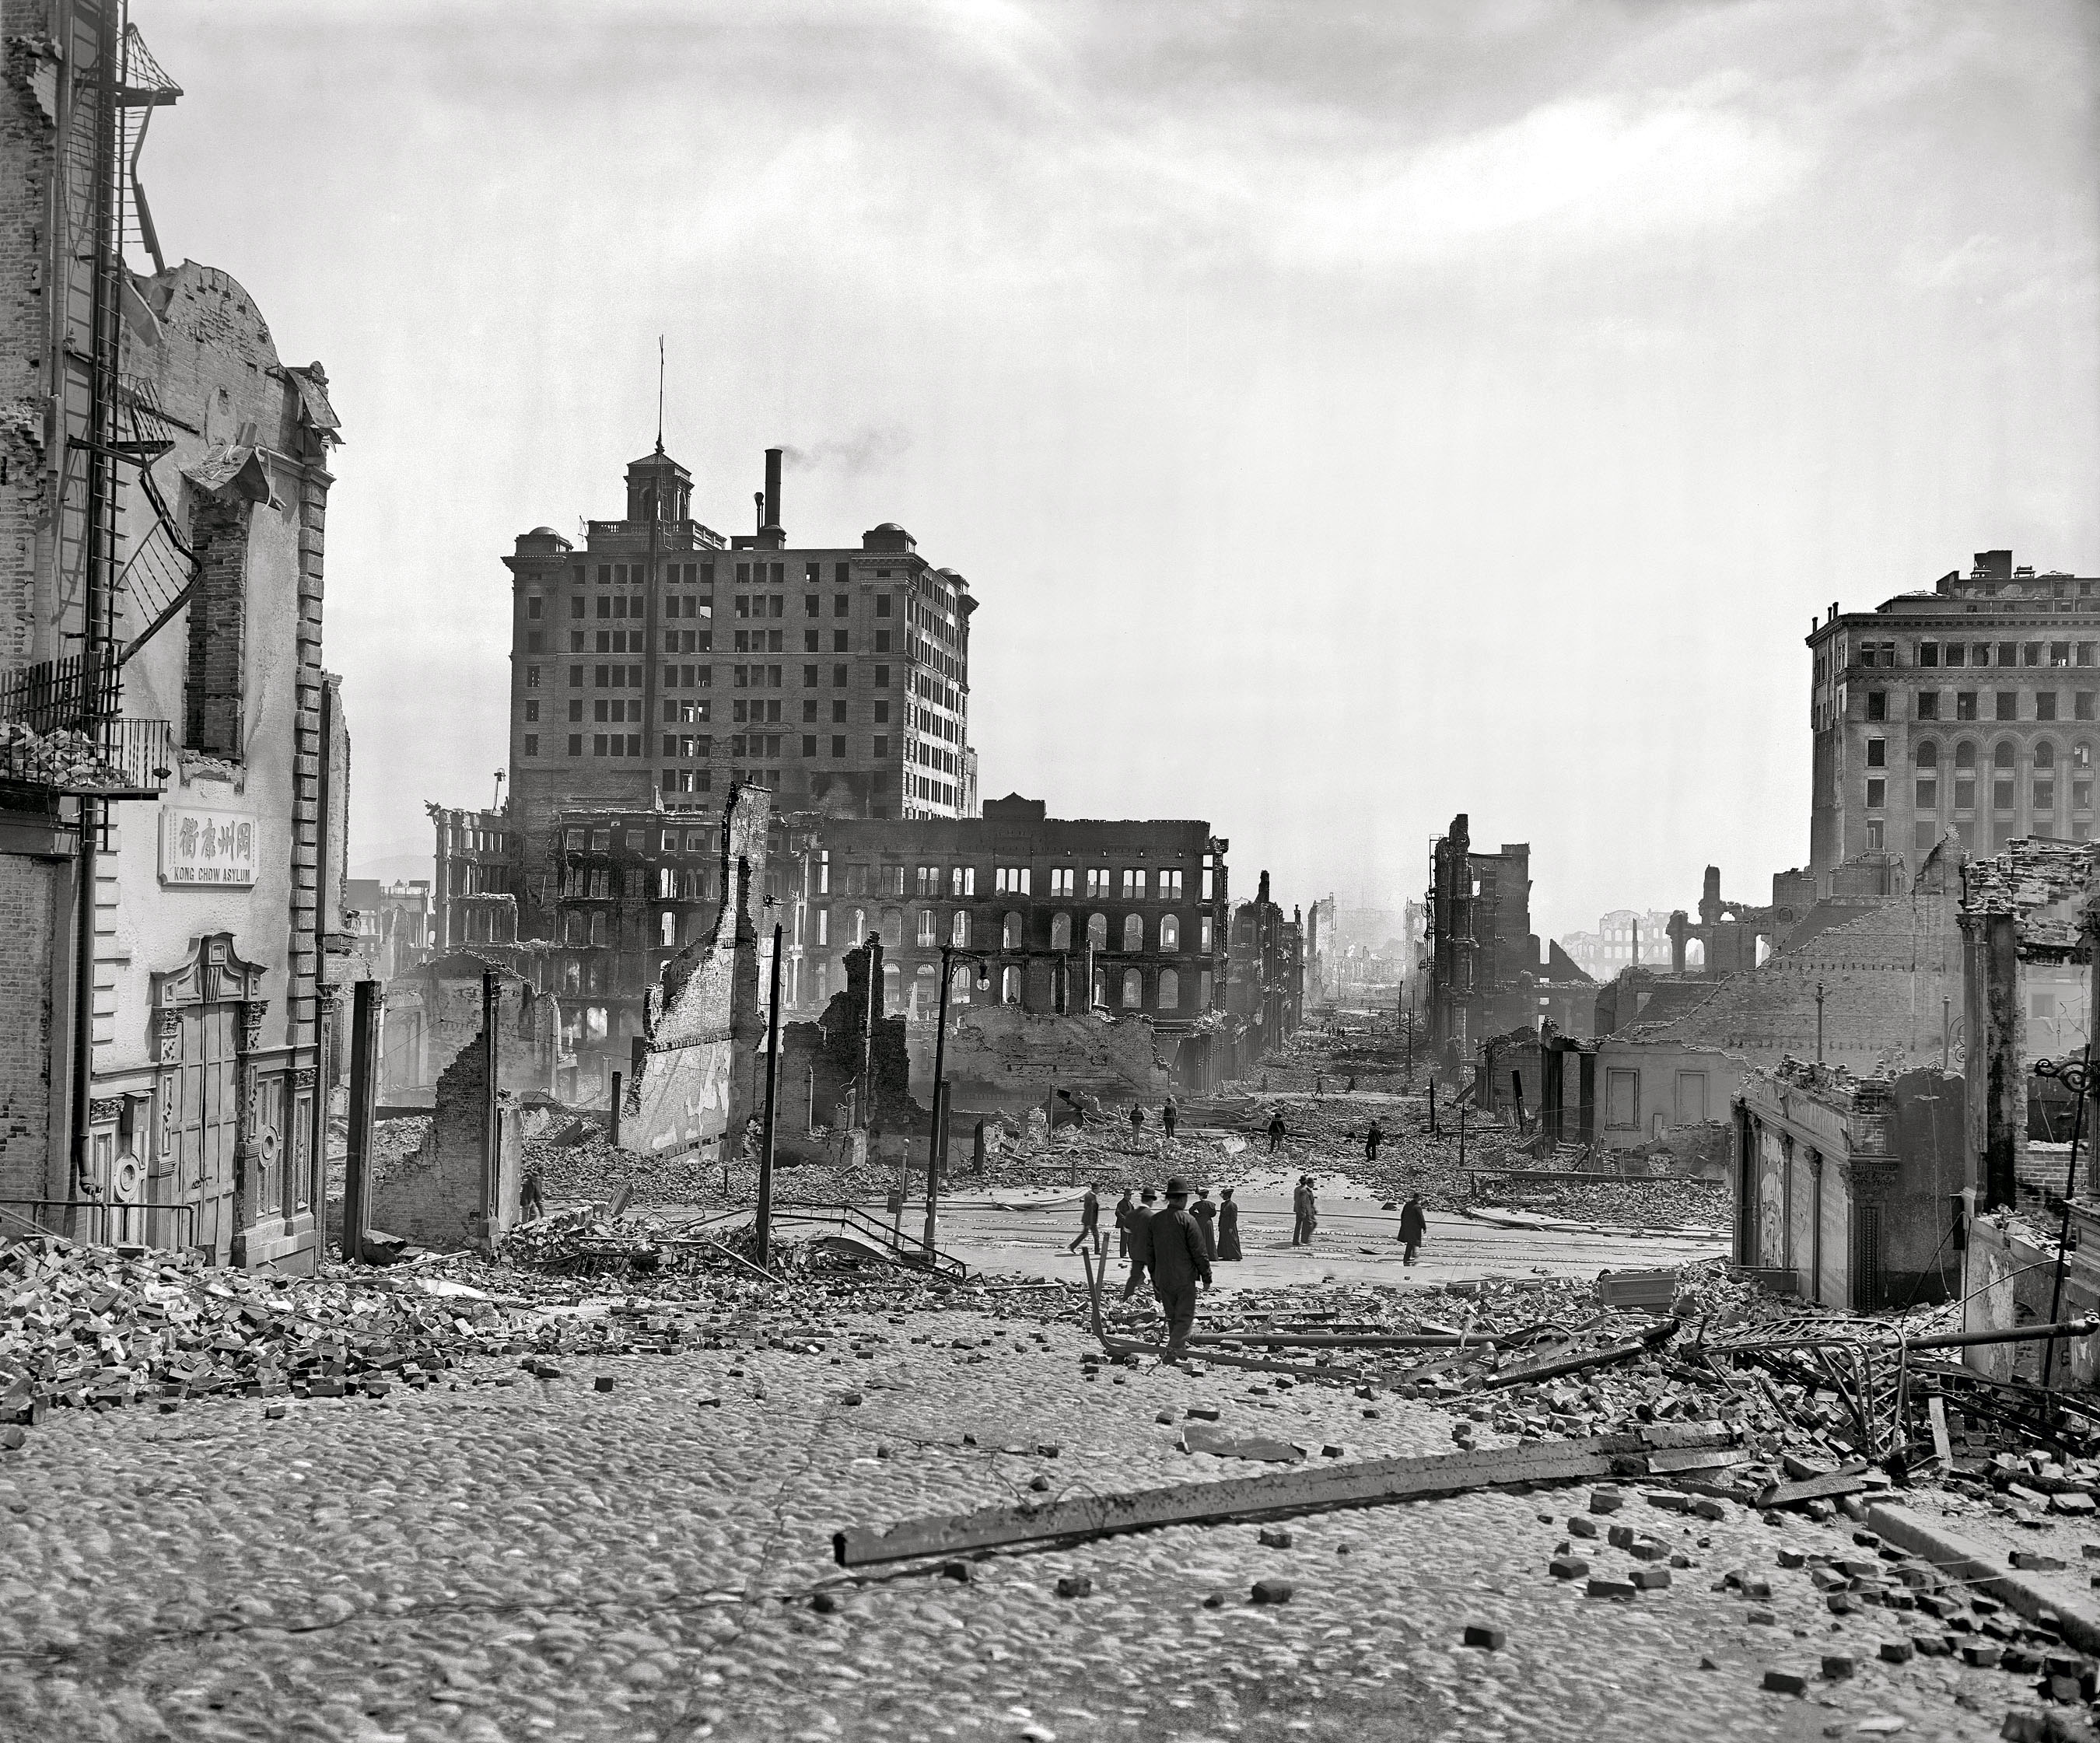 aftermath of the great san francisco earthquake and fire of april 18 1906 8x10 inch dry plate glass negative